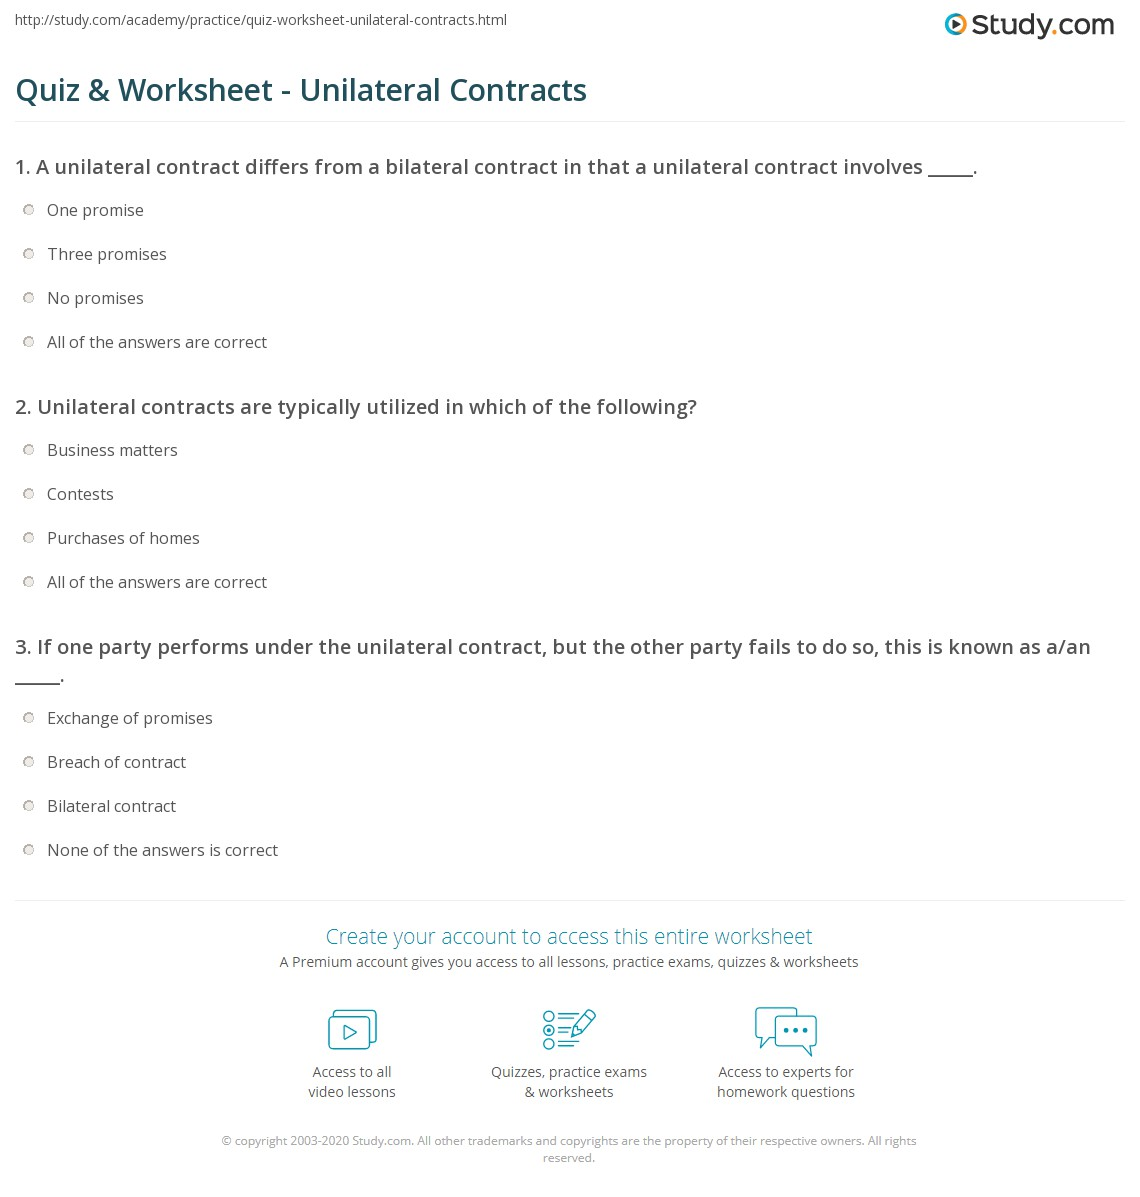 Quiz Worksheet Unilateral Contracts Study